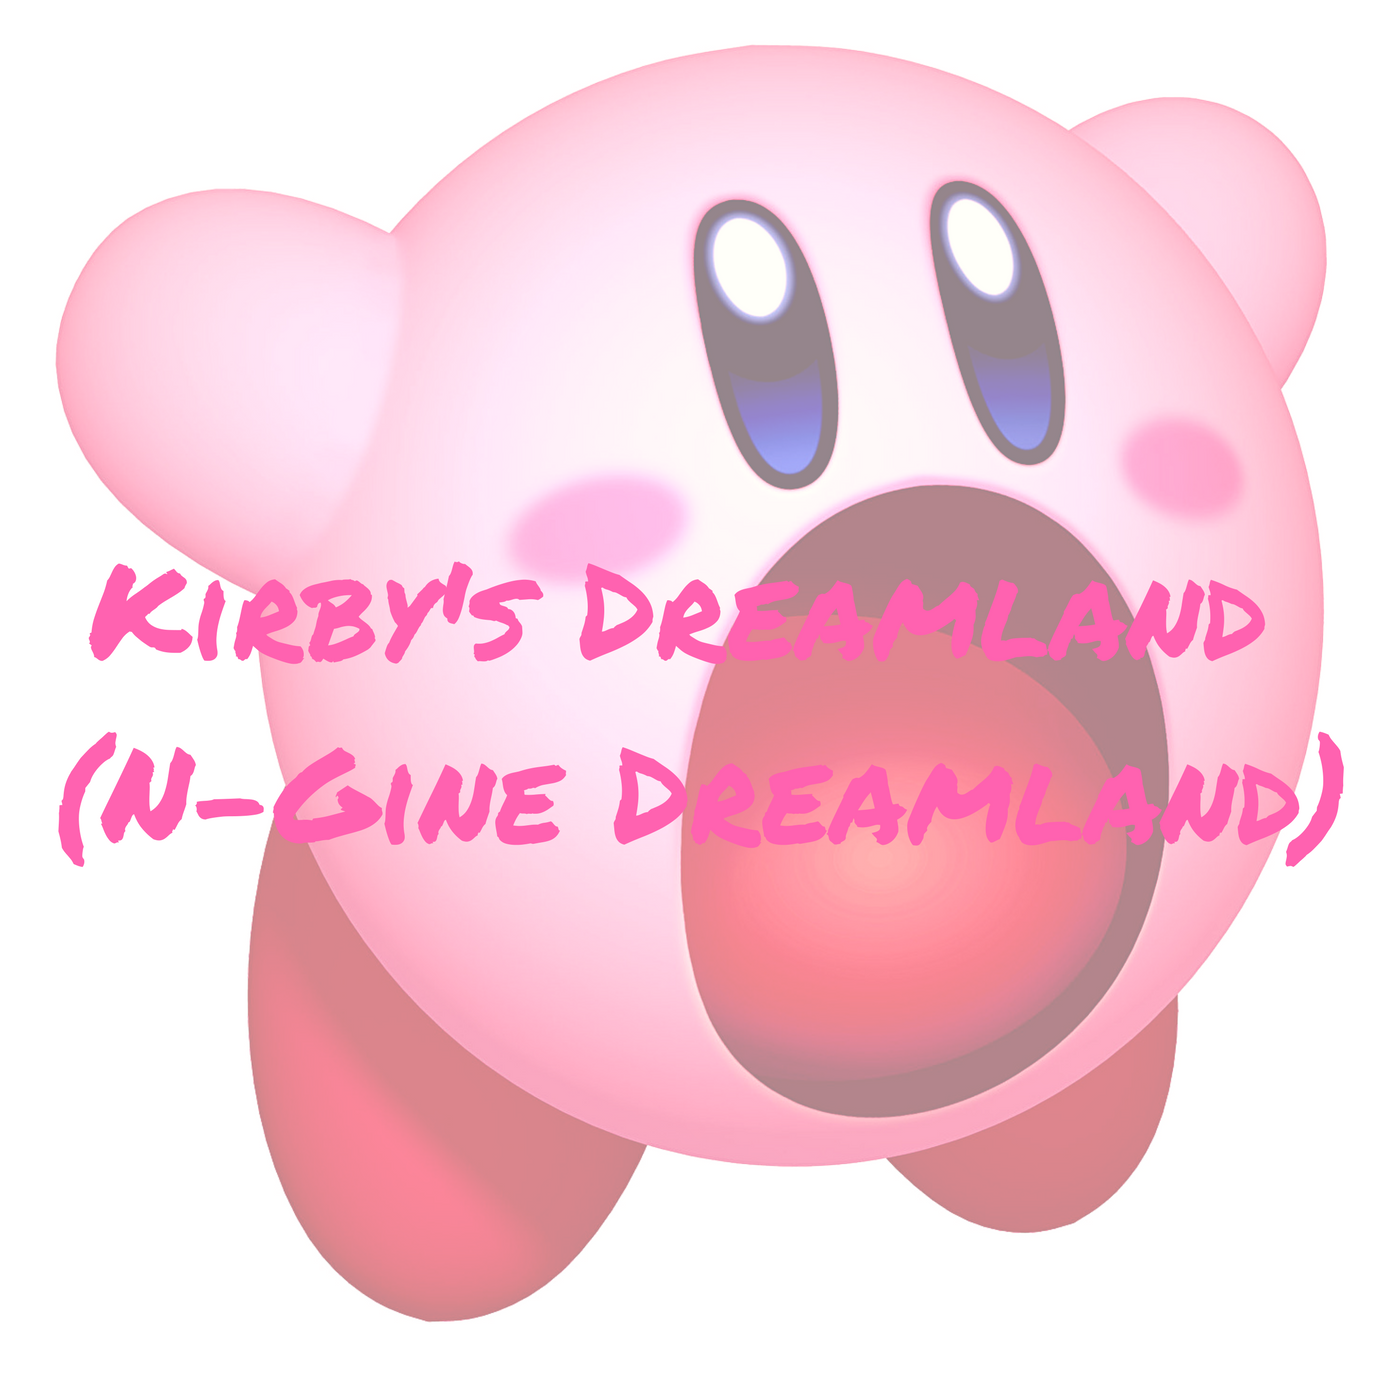 Kirby's Dreamland (N-Gine Dreamland) Photo.png